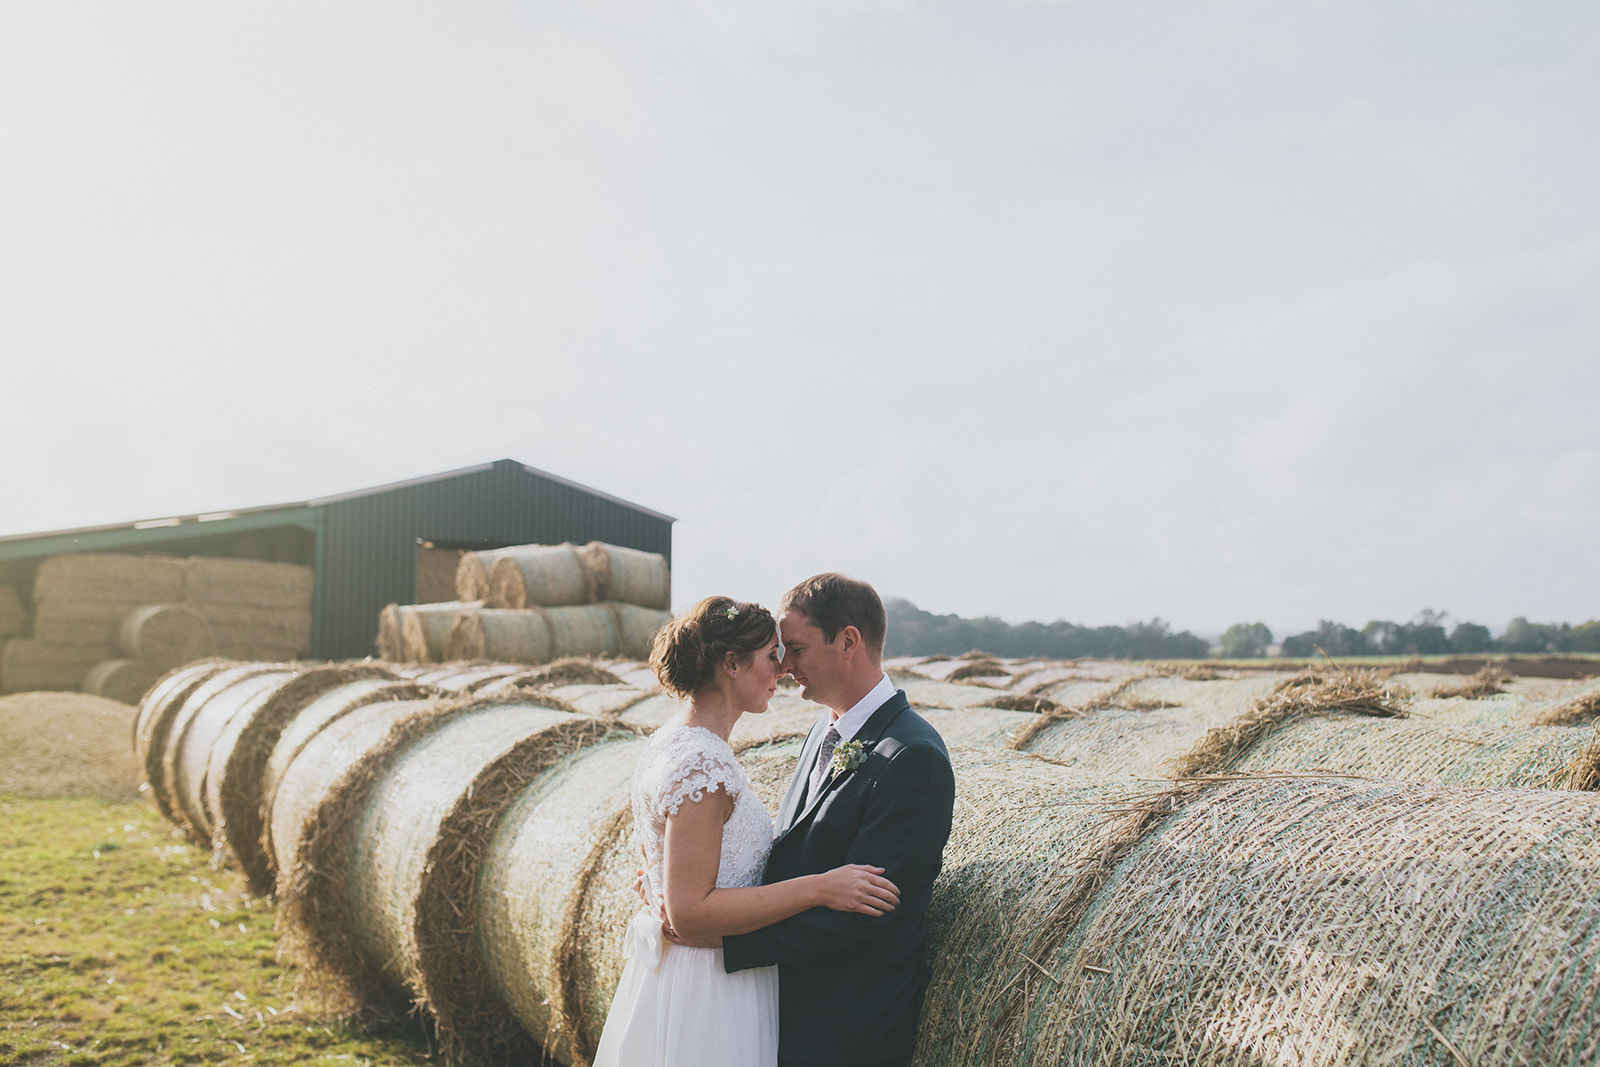 bride and groom are close, standing in front of a barn and haybales. star inn at harome near helmsley, north yorkshire wedding photographer. stop motion wedding films uk.